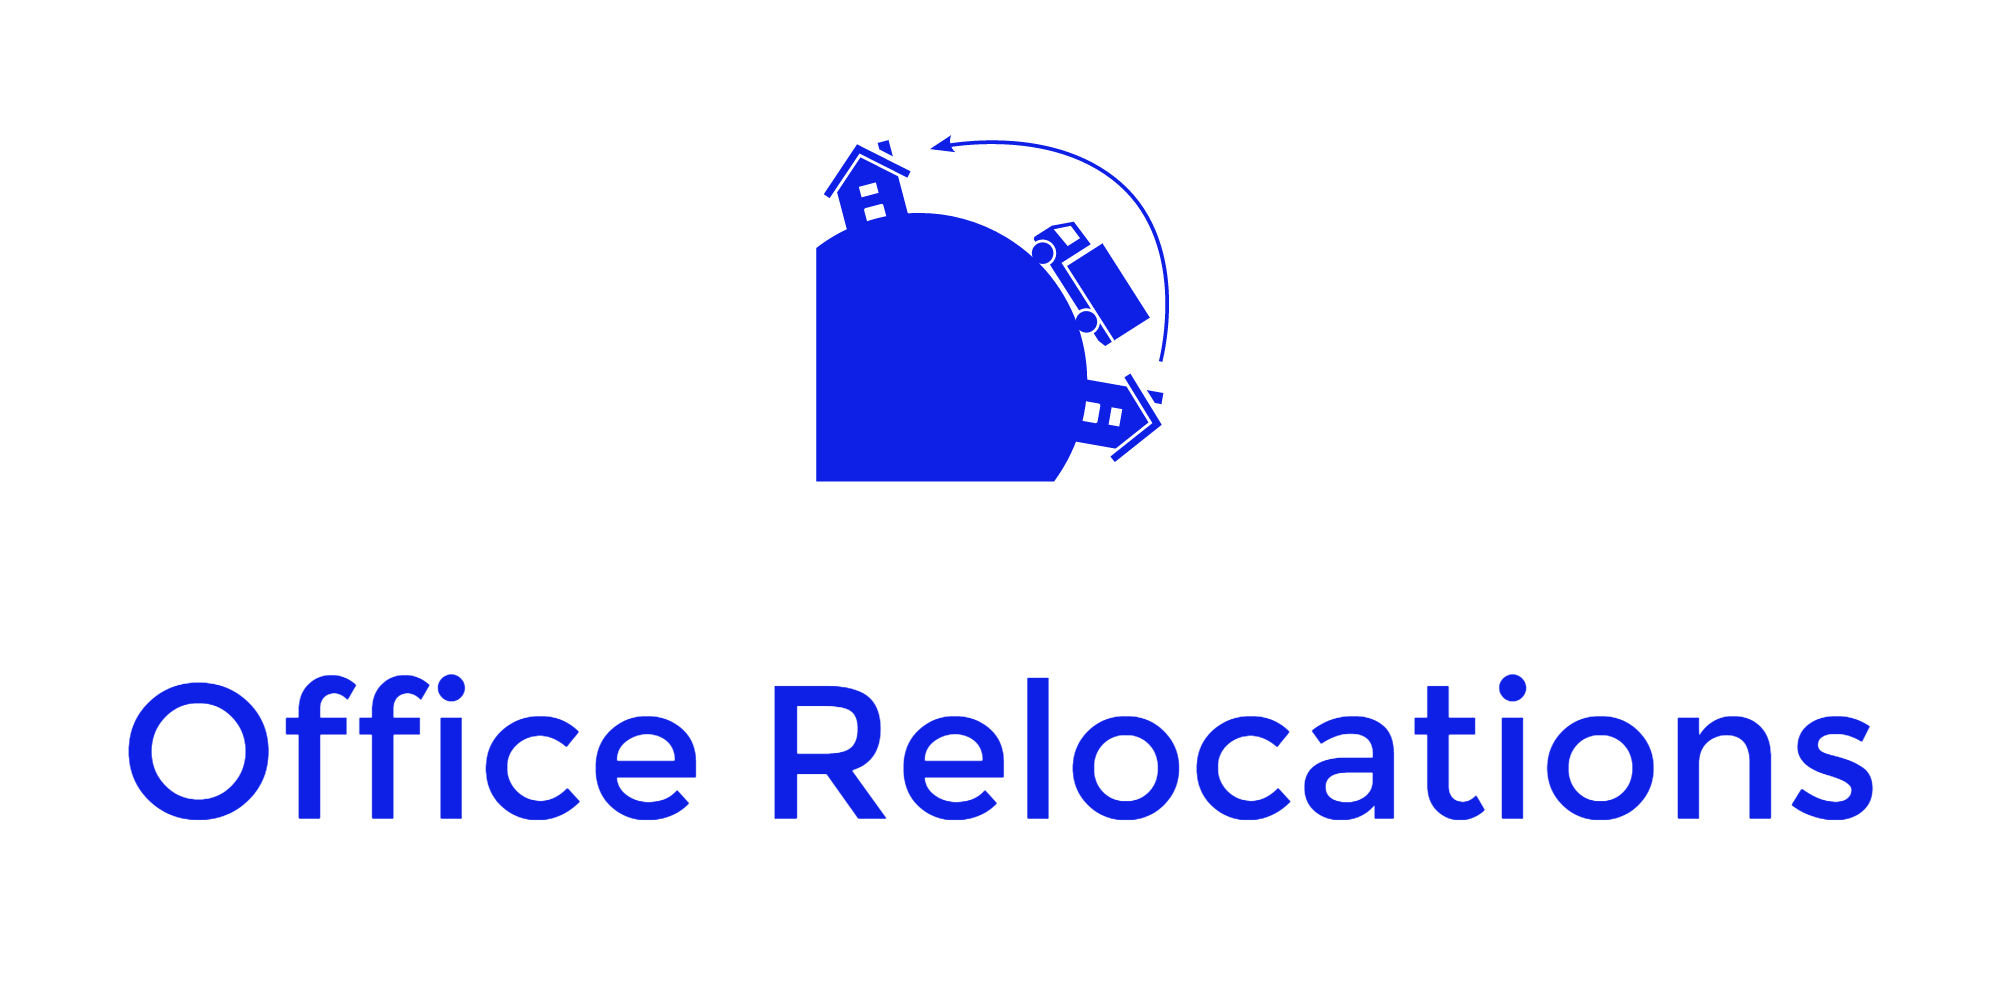 Office Relocations-logo.png